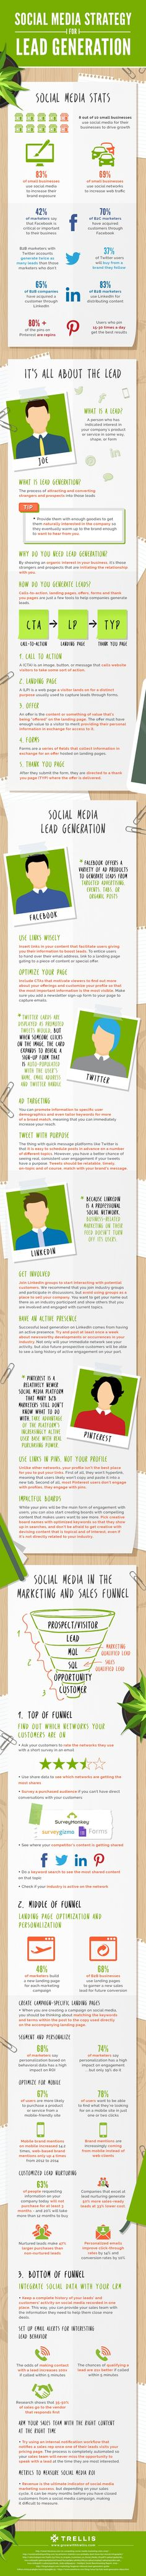 Social Media Strategy for Lead Generation [Infographic] | Social Media Today